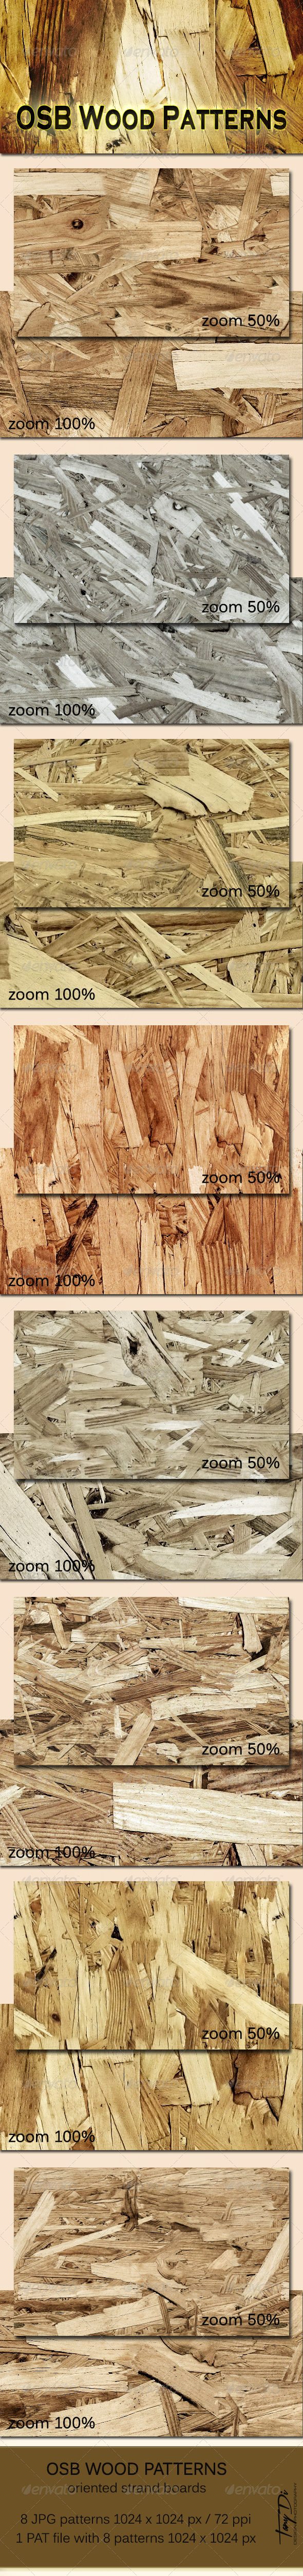 GraphicRiver OSB Wood Patterns 5934391